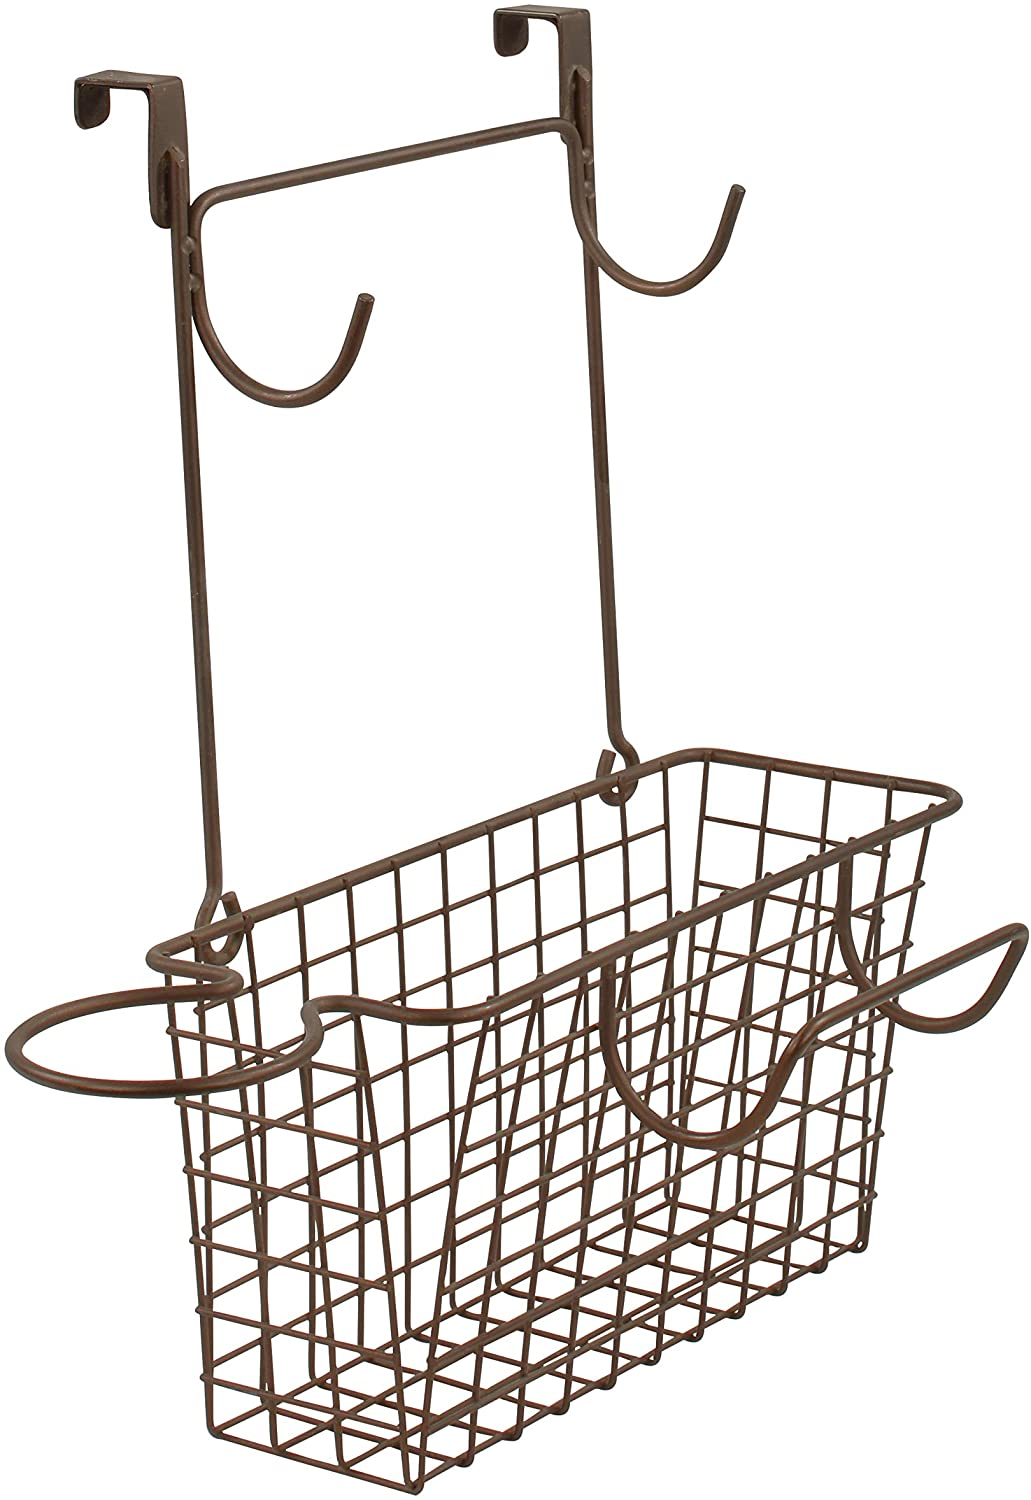 Spectrum Diversified Grid Wide Hair Station Basket Over the Cabinet Door Steel Wire Bathroom Organizer, Includes Hooks for Styling Tools & Loop for Blow Dryer, Bronze: Home & Kitchen